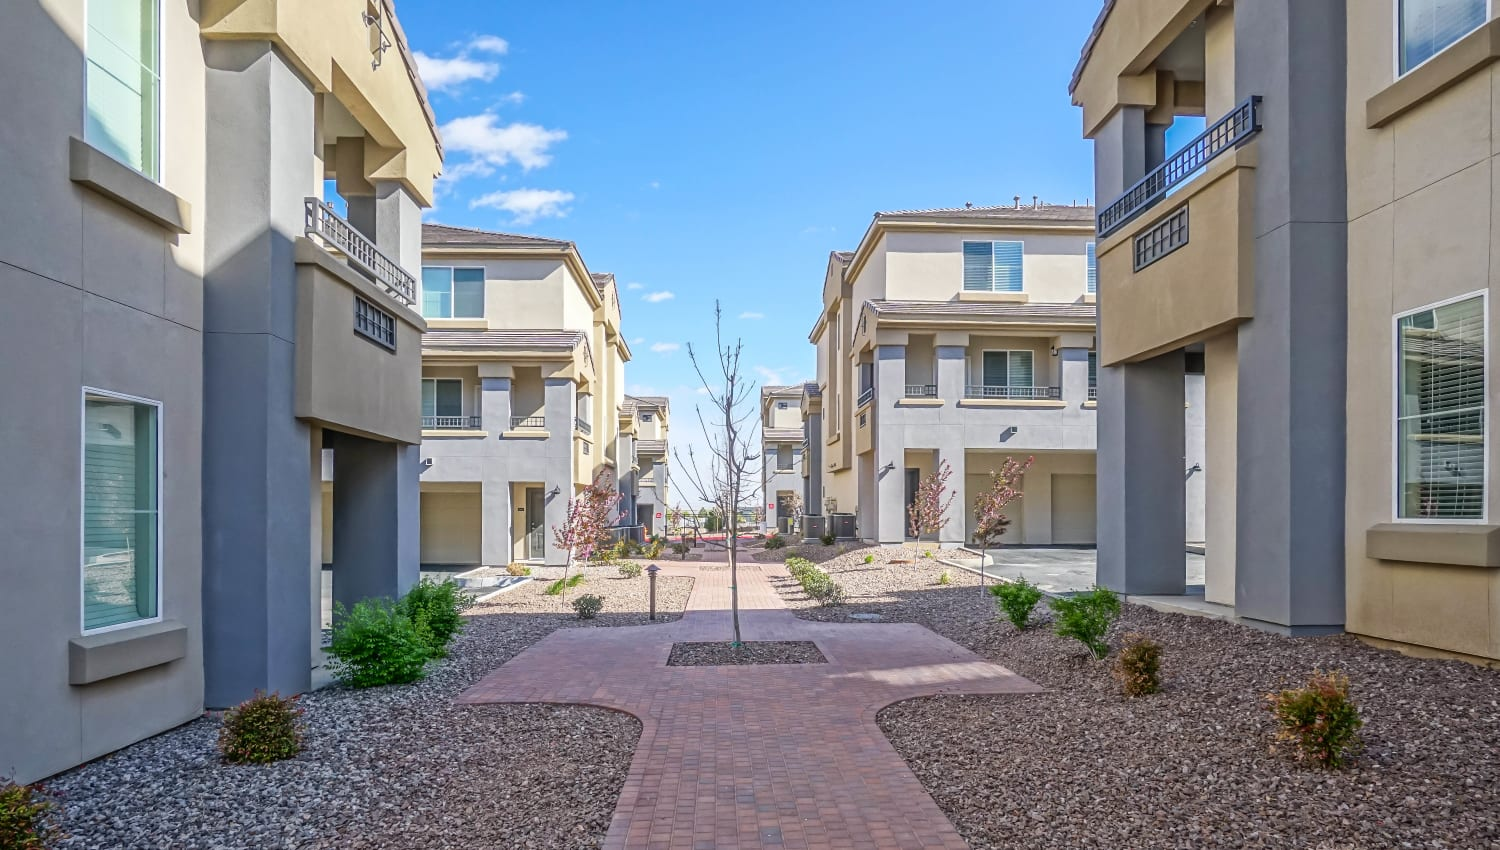 Brick walkways between resident buildings at Olympus Northpoint in Albuquerque, New Mexico